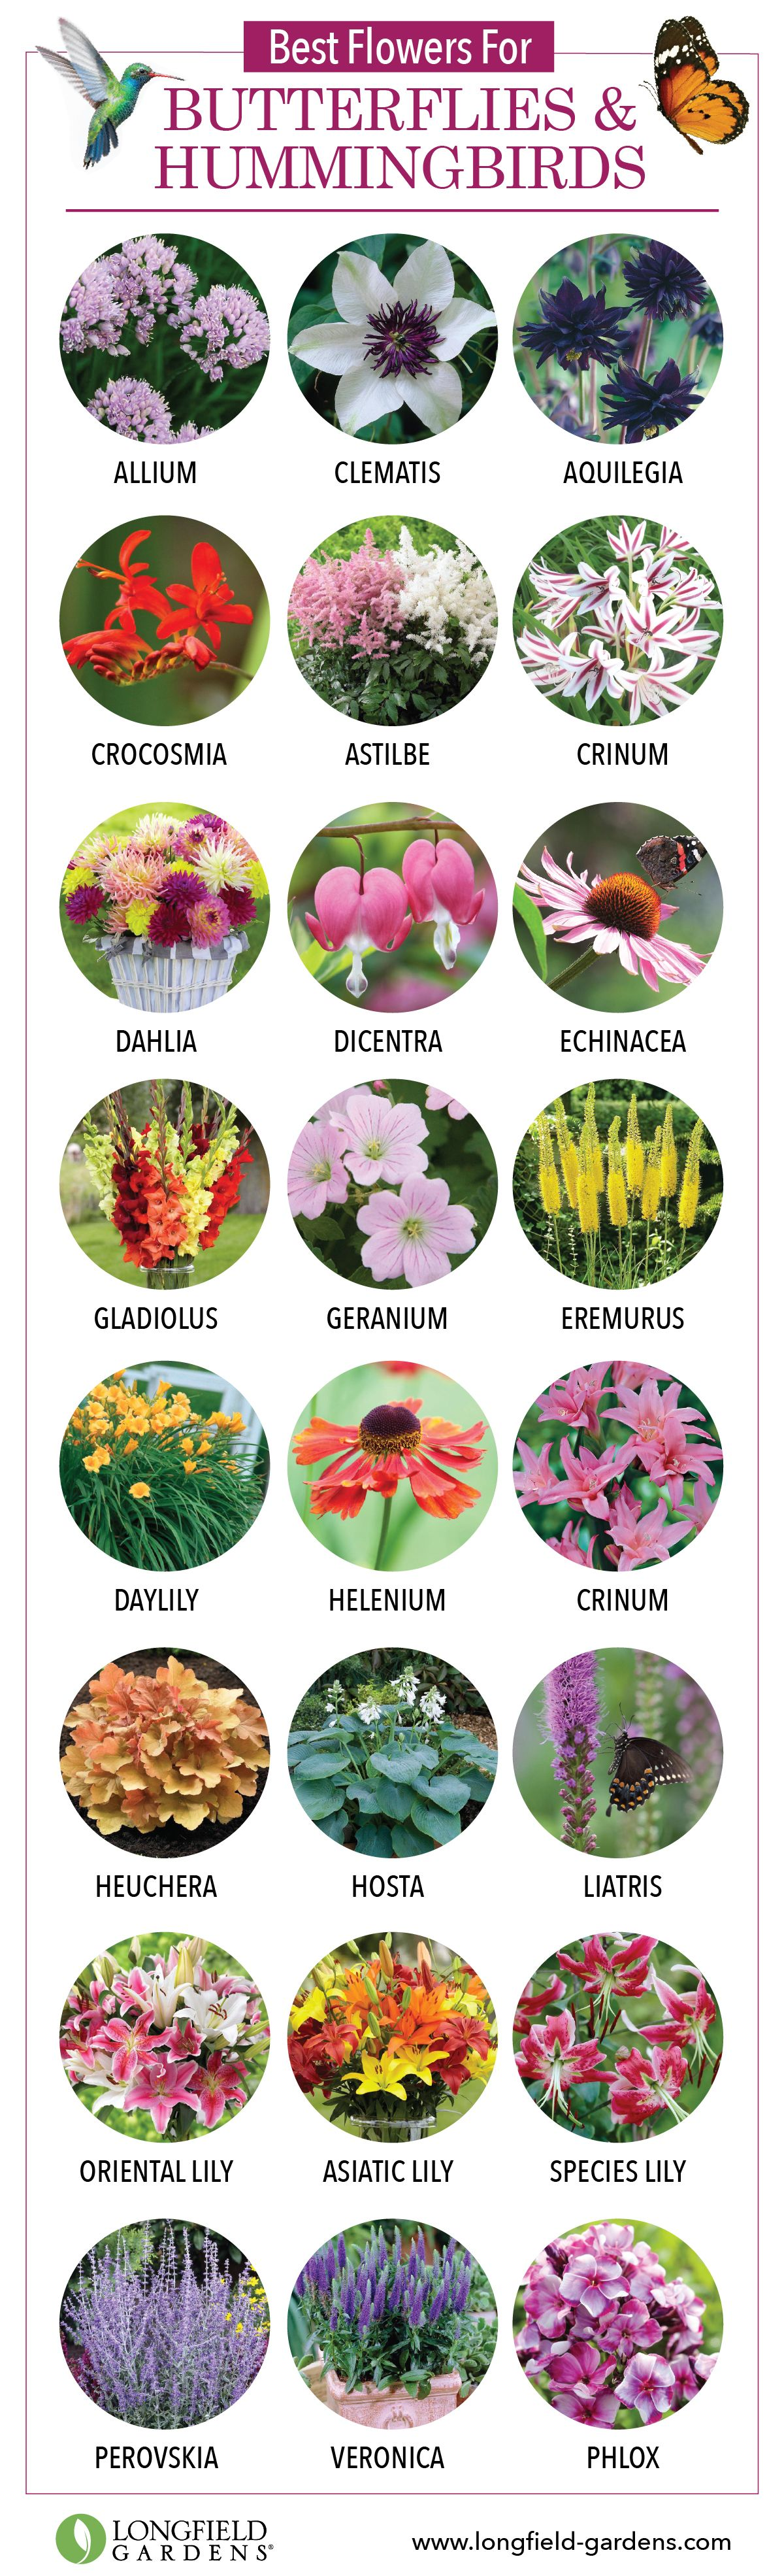 Best Flowers For Butterflies And Hummingbirds Bees Birds And